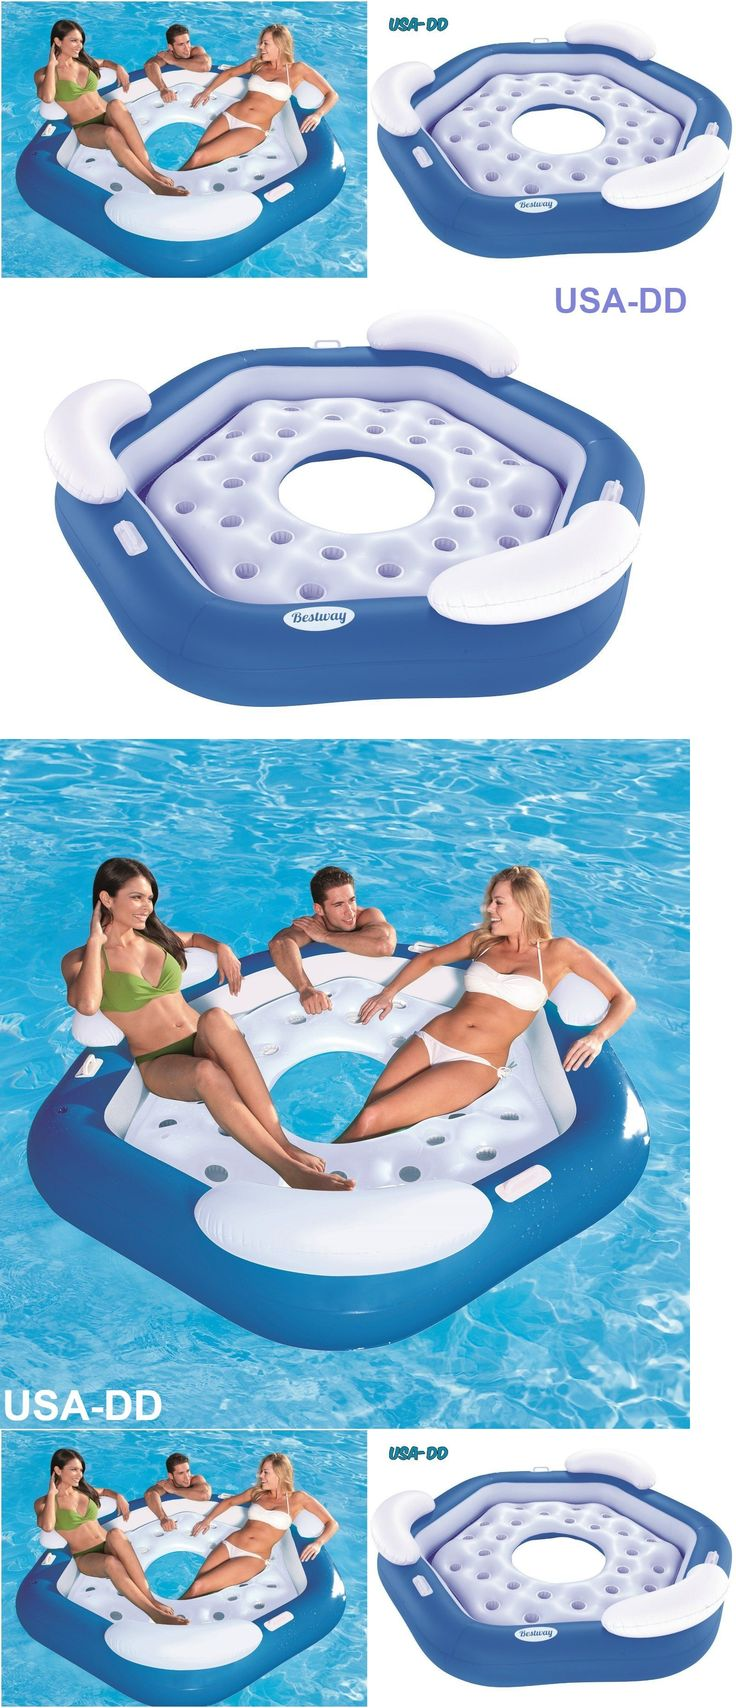 Inflatable Floats and Tubes 79801: Giant Inflatable Floating Island Pool Party Big Lake Water Tube Ocean River Raft -> BUY IT NOW ONLY: $40.39 on eBay!